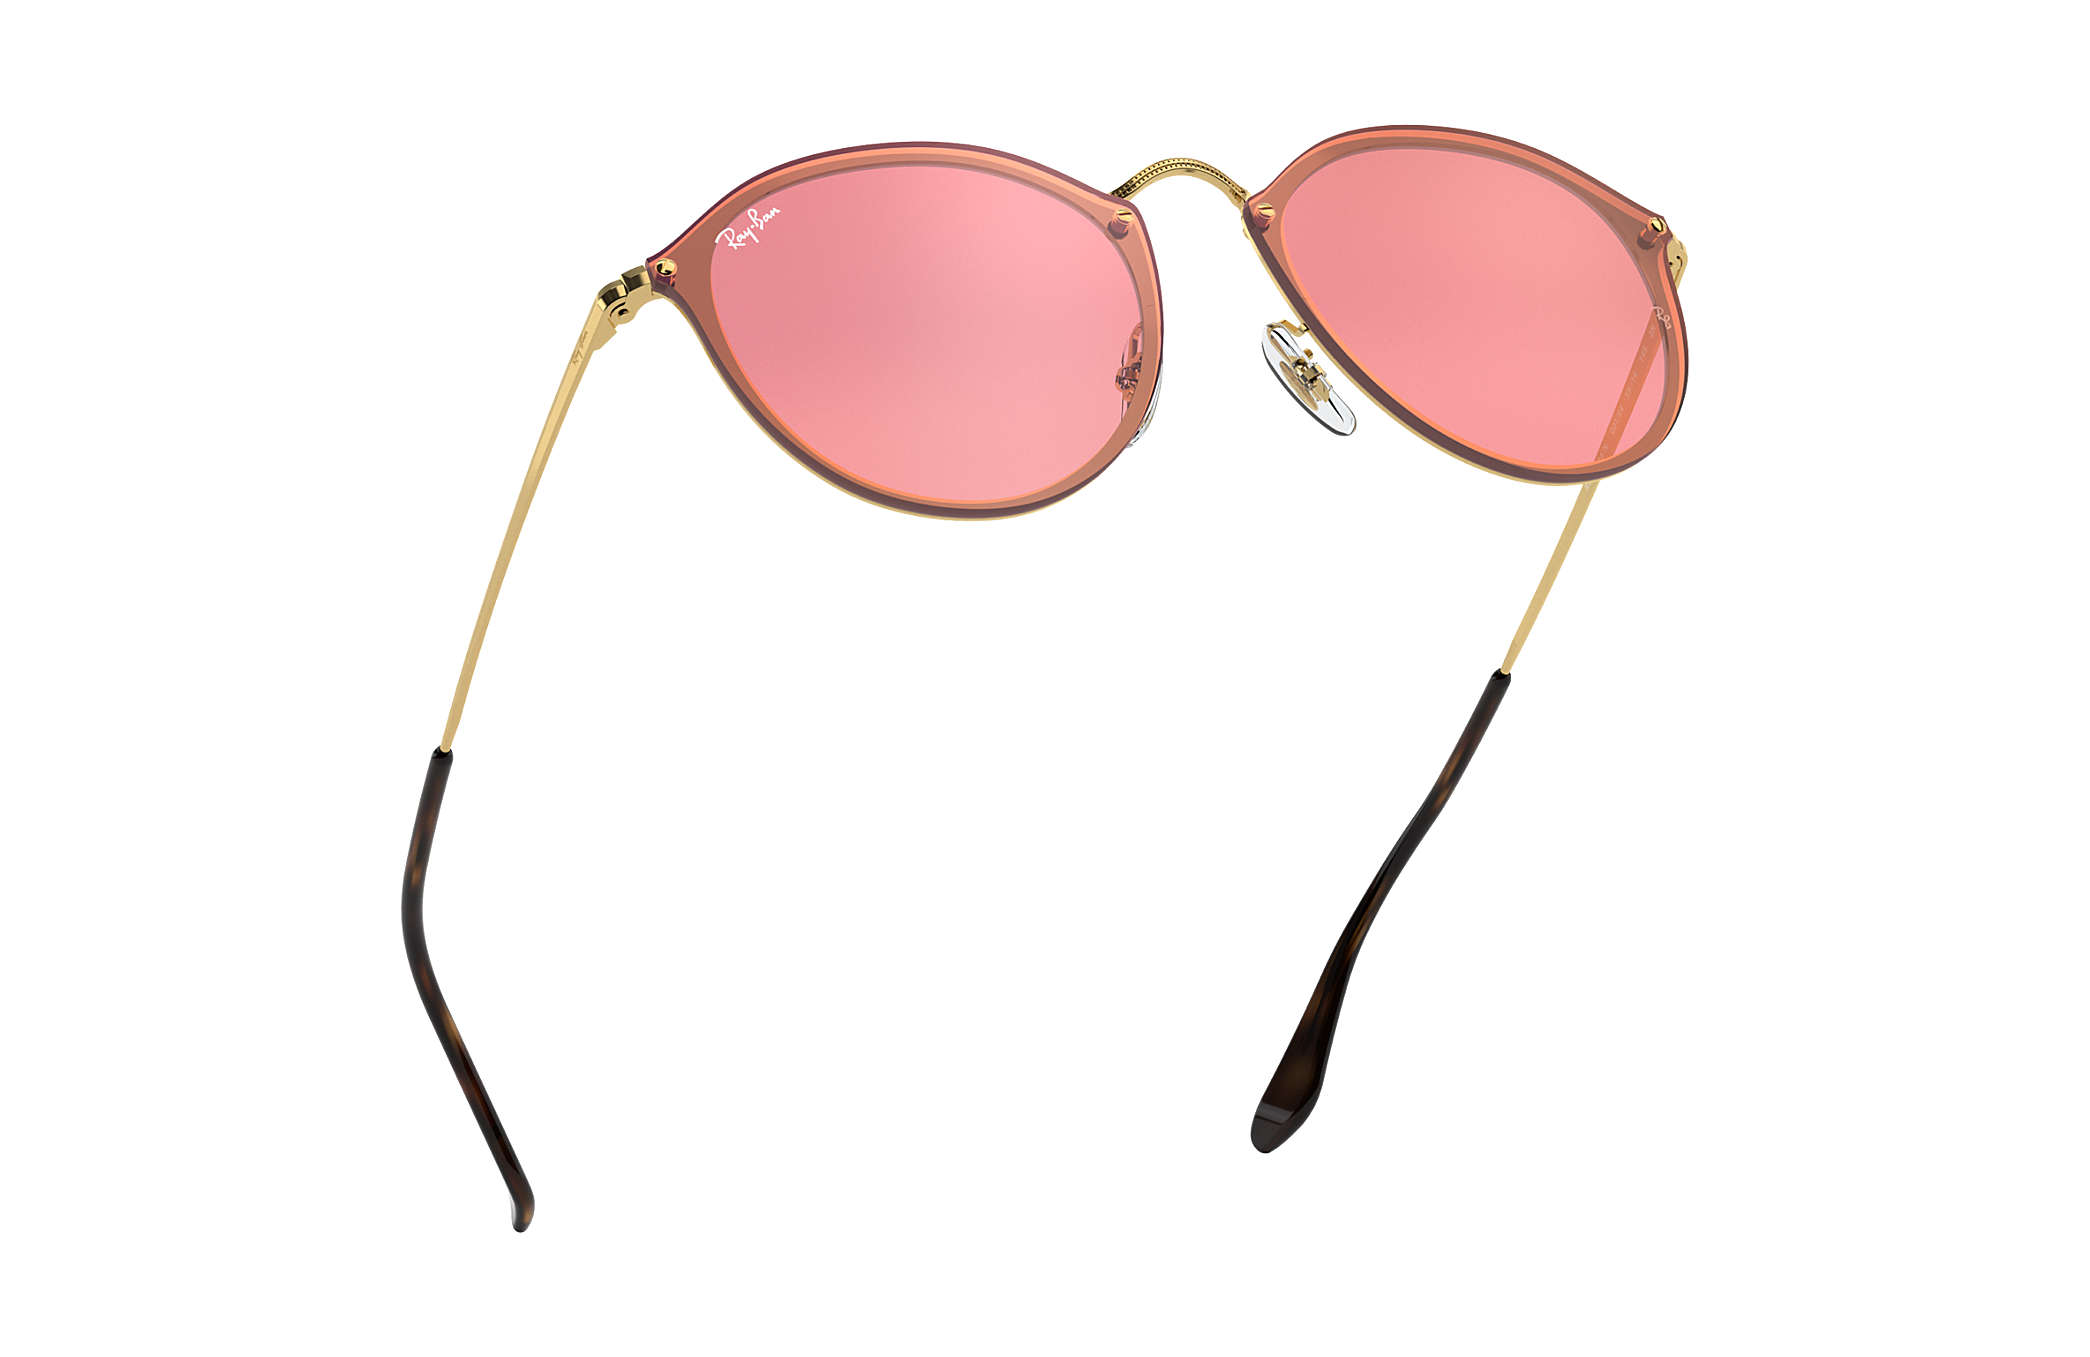 fb6f800ff9cba Ray-Ban Blaze Round RB3574N Gold - Metal - Pink Lenses - 0RB3574N001 ...